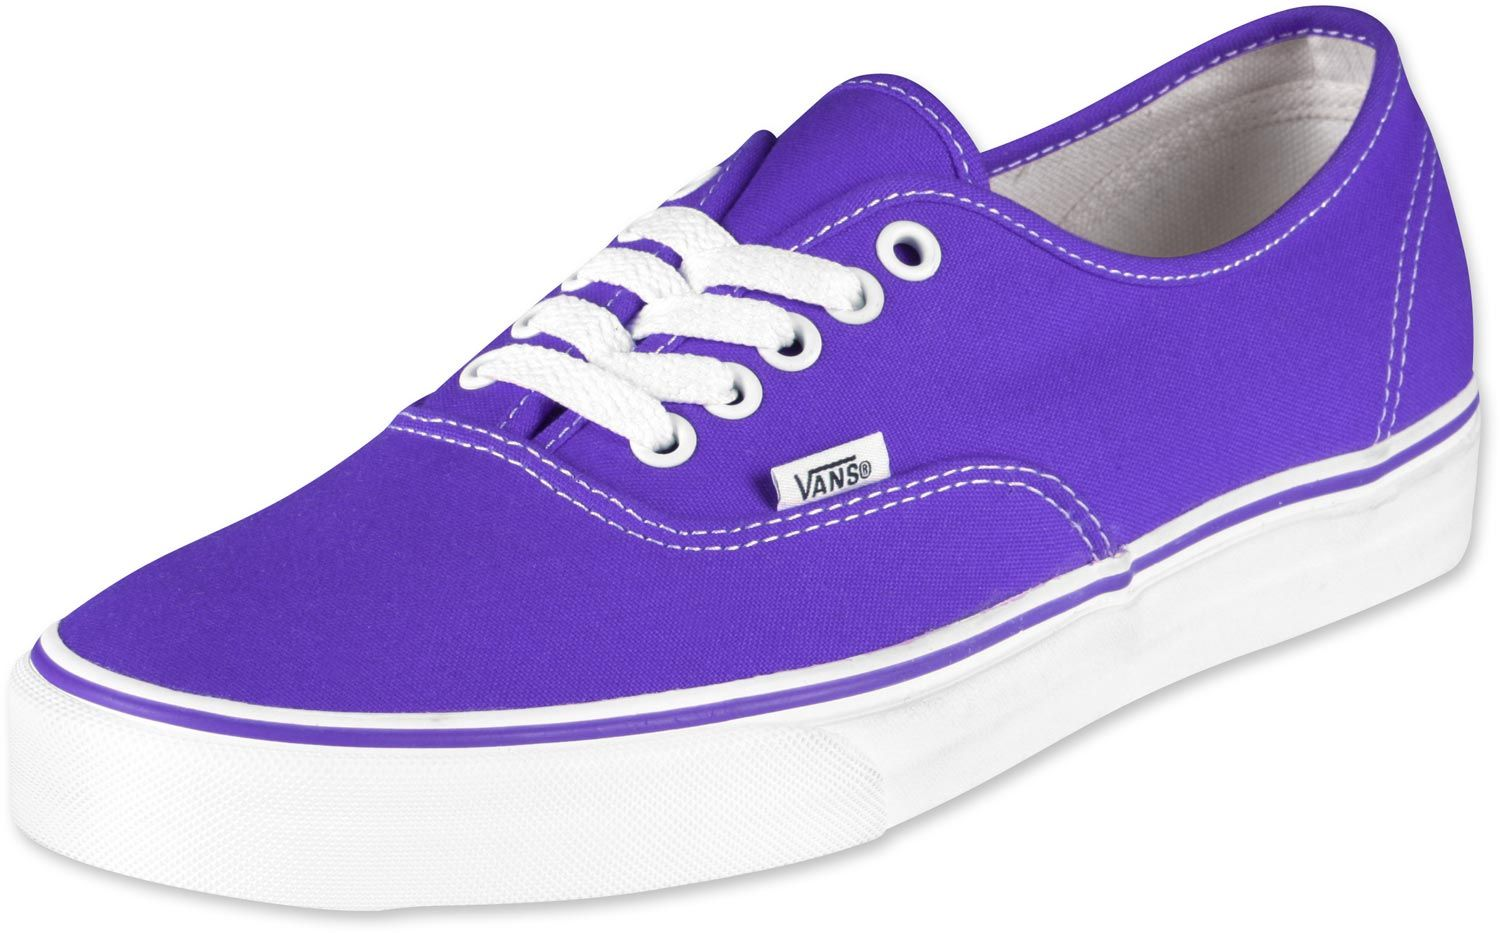 Vans Purple And White